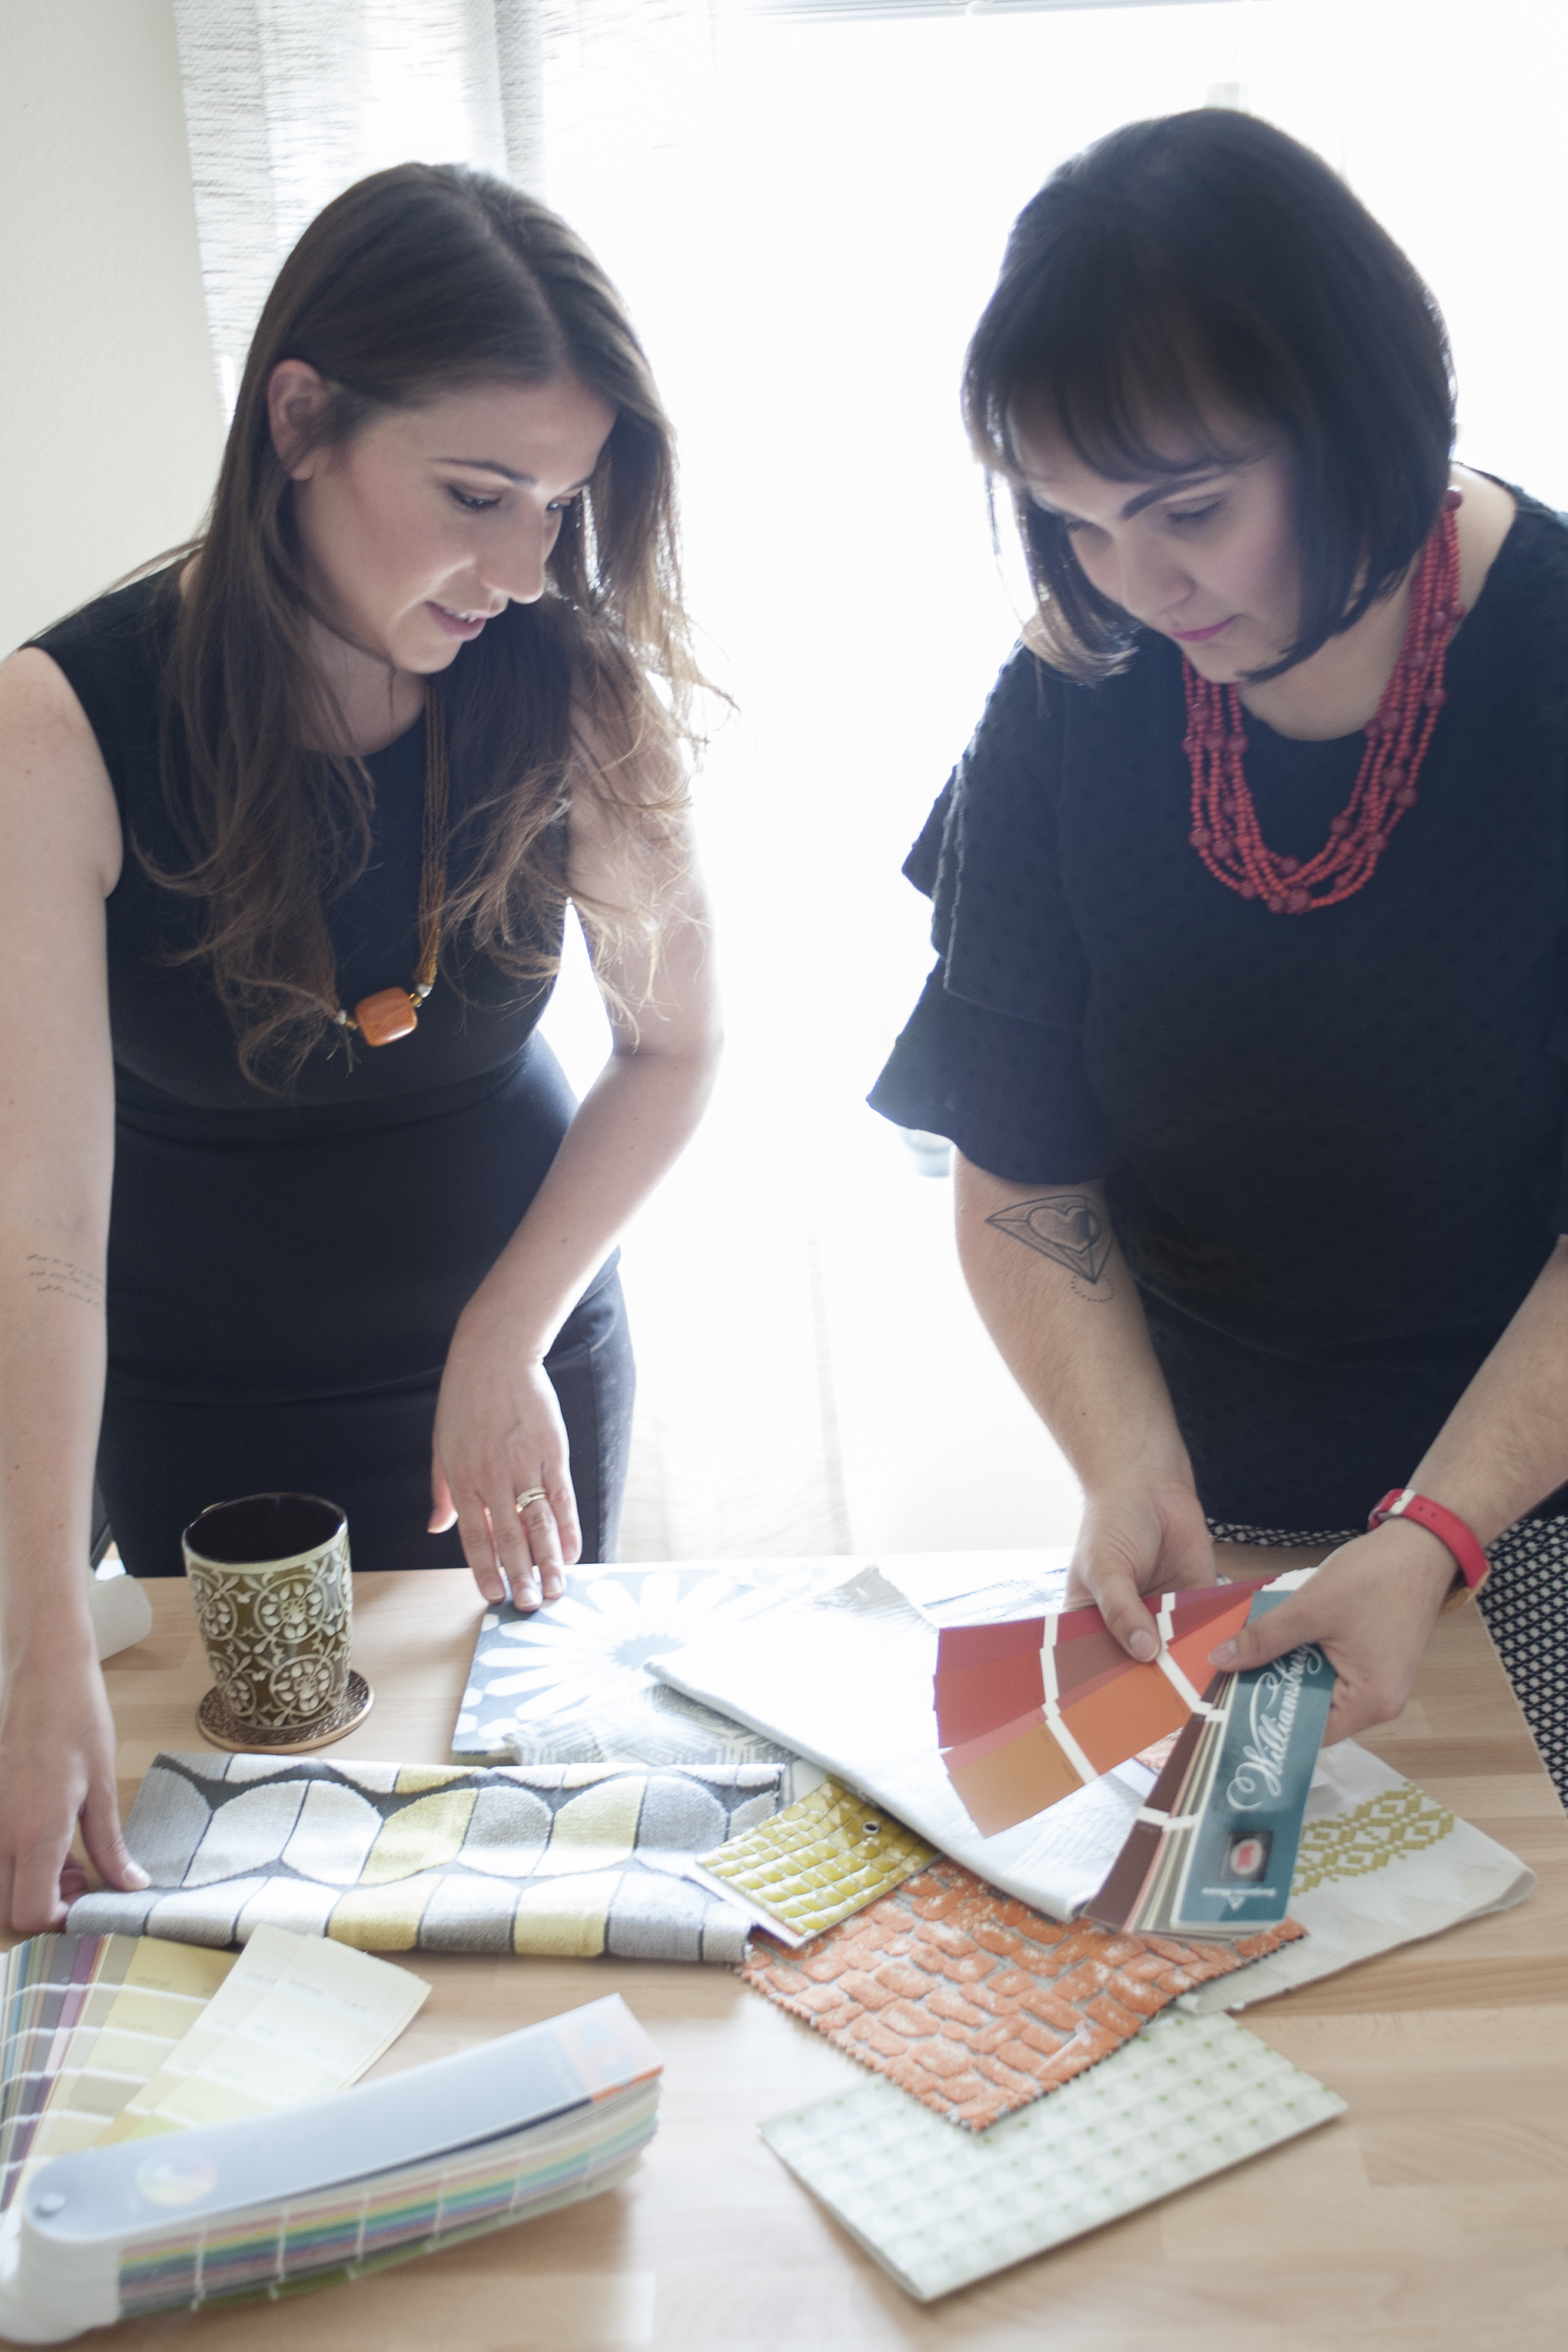 Elizabeth and Adriele working with fabrics and paint to process a project